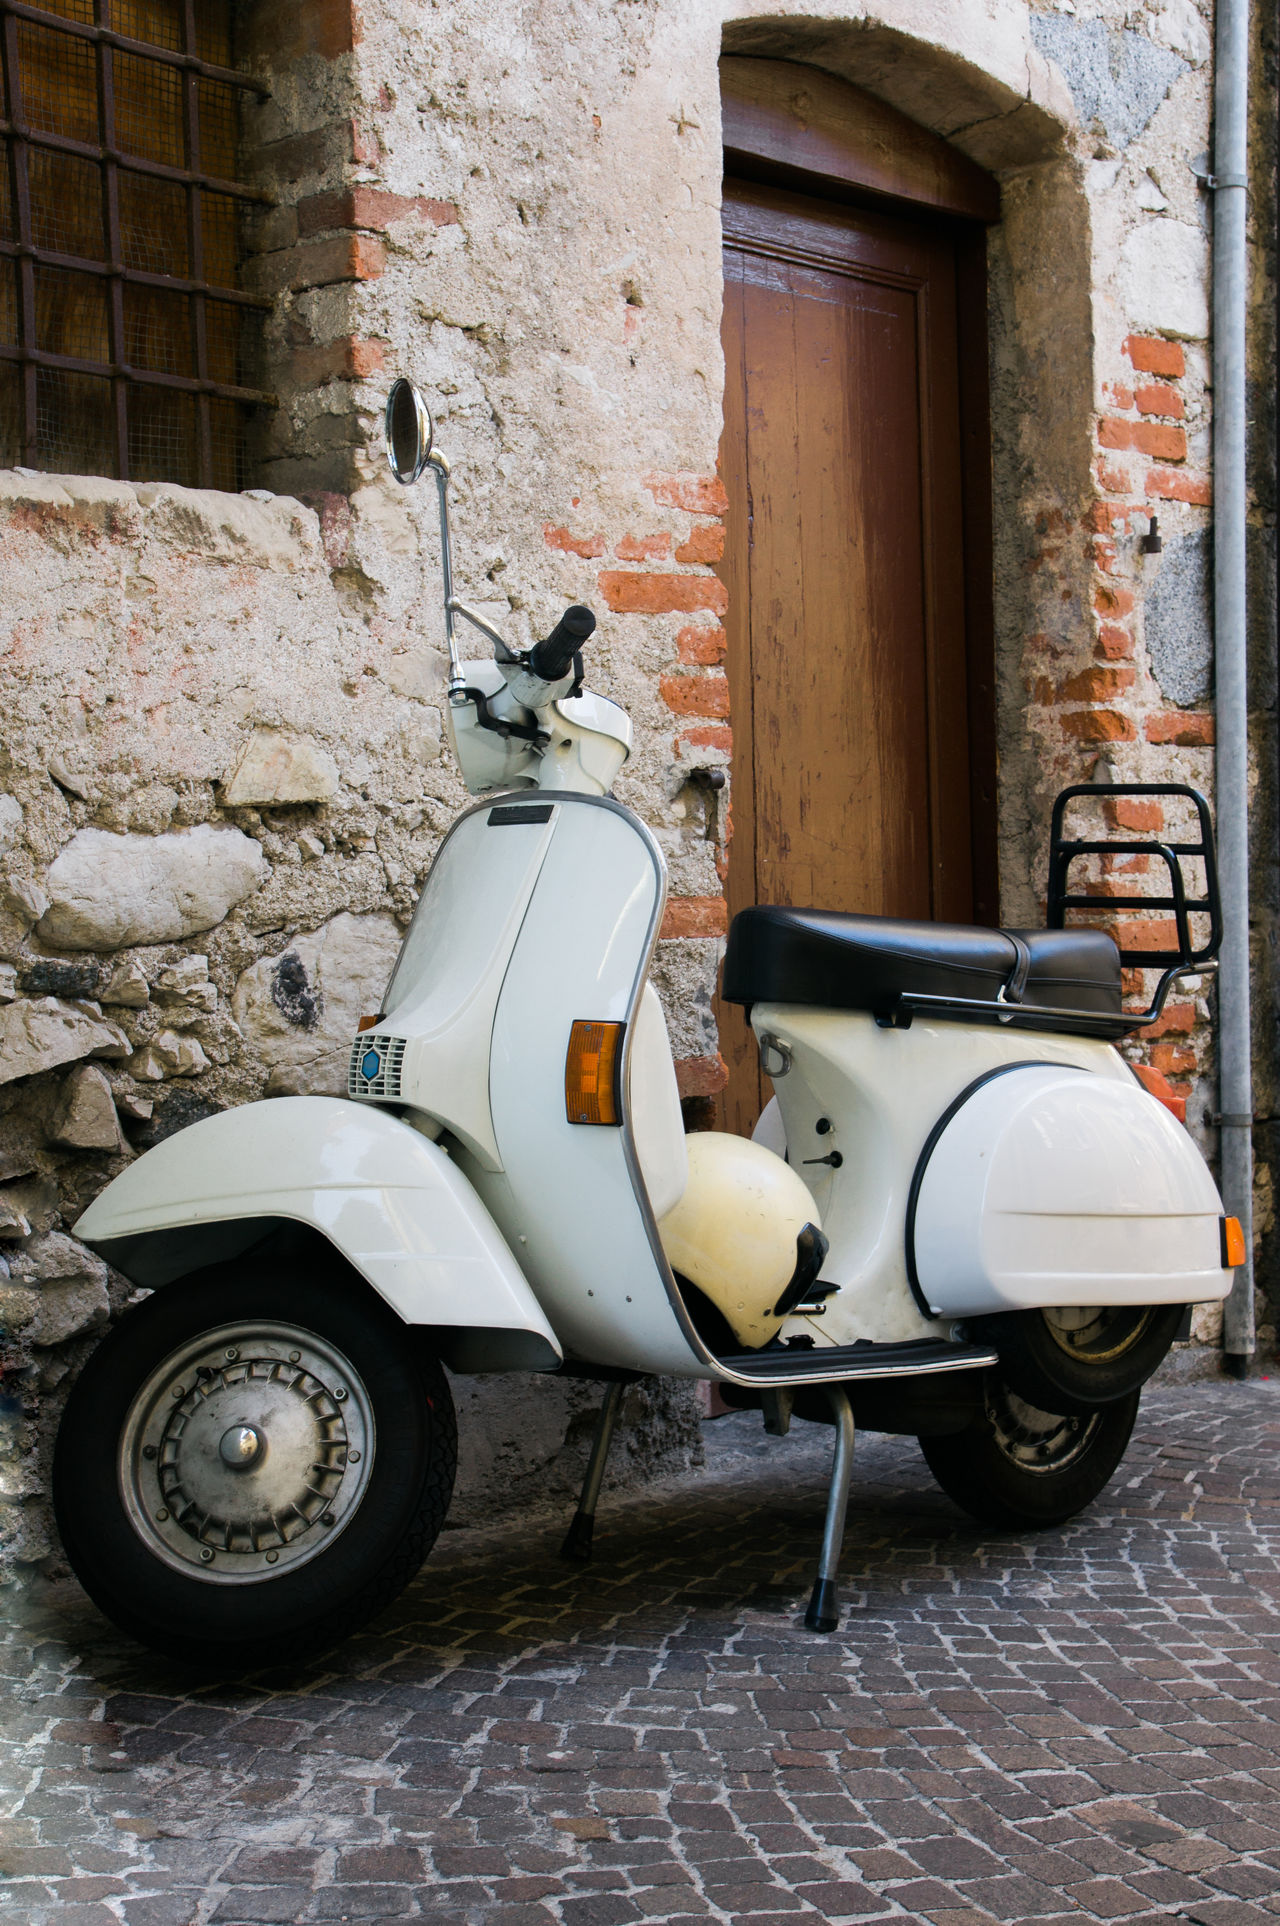 Architecture Brick Wall Building Exterior Built Structure Cobblestone Italian Style Land Vehicle Mode Of Transport Motor Scooter Motorbike No People Old-fashioned Outdoors Parking Retro Retro Style Scooter Stationary Streetphotography Transportation Typical Urban Vespa Vintage Vintage Style